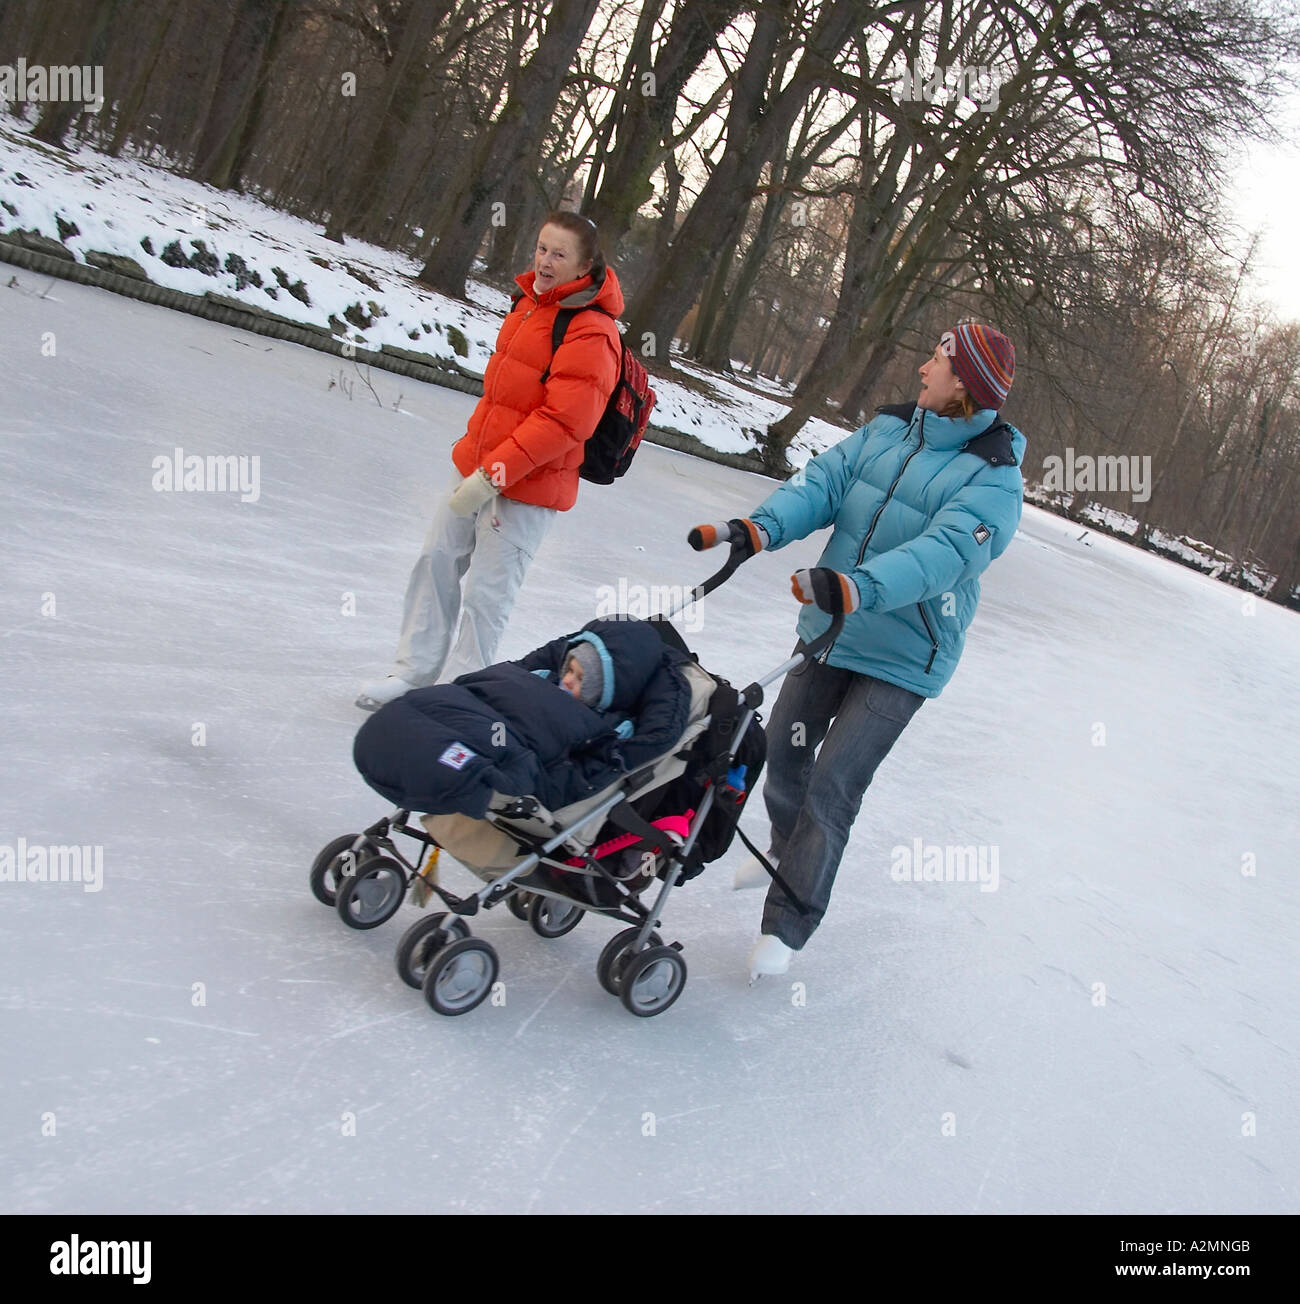 woman ice-skating with baby in stroller